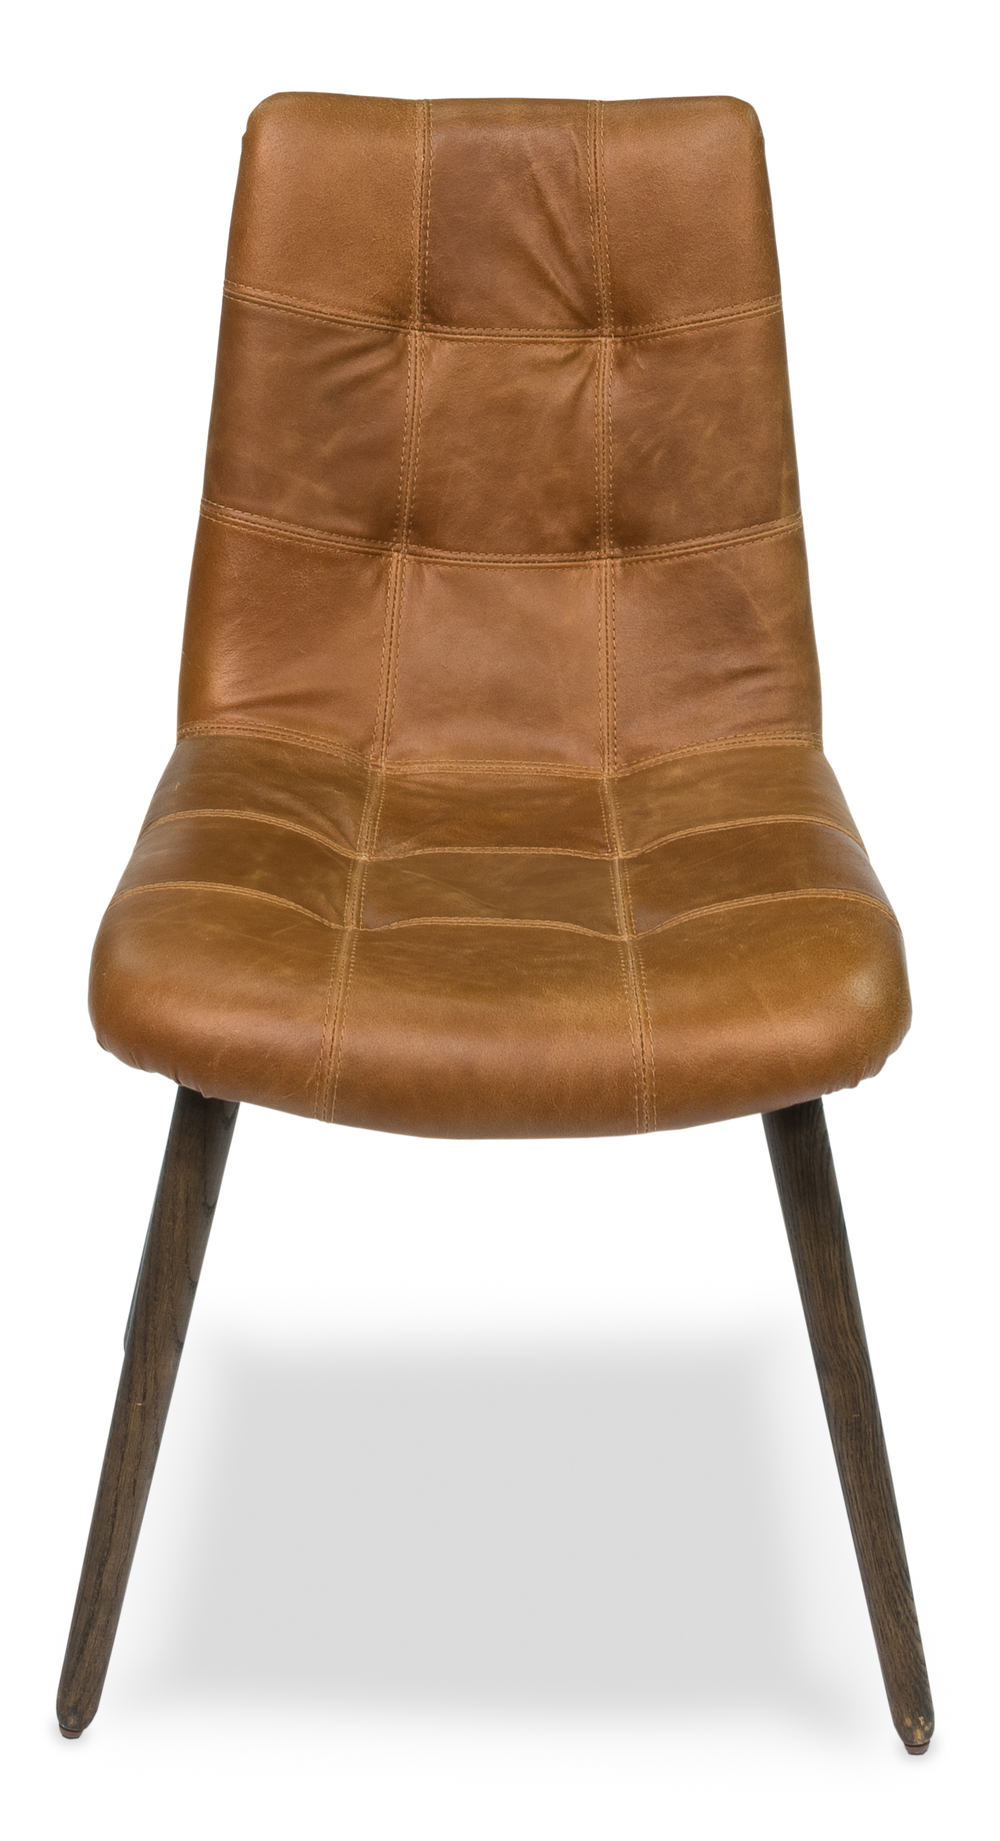 Sarreid - Harned Leather Side Chair, Dark